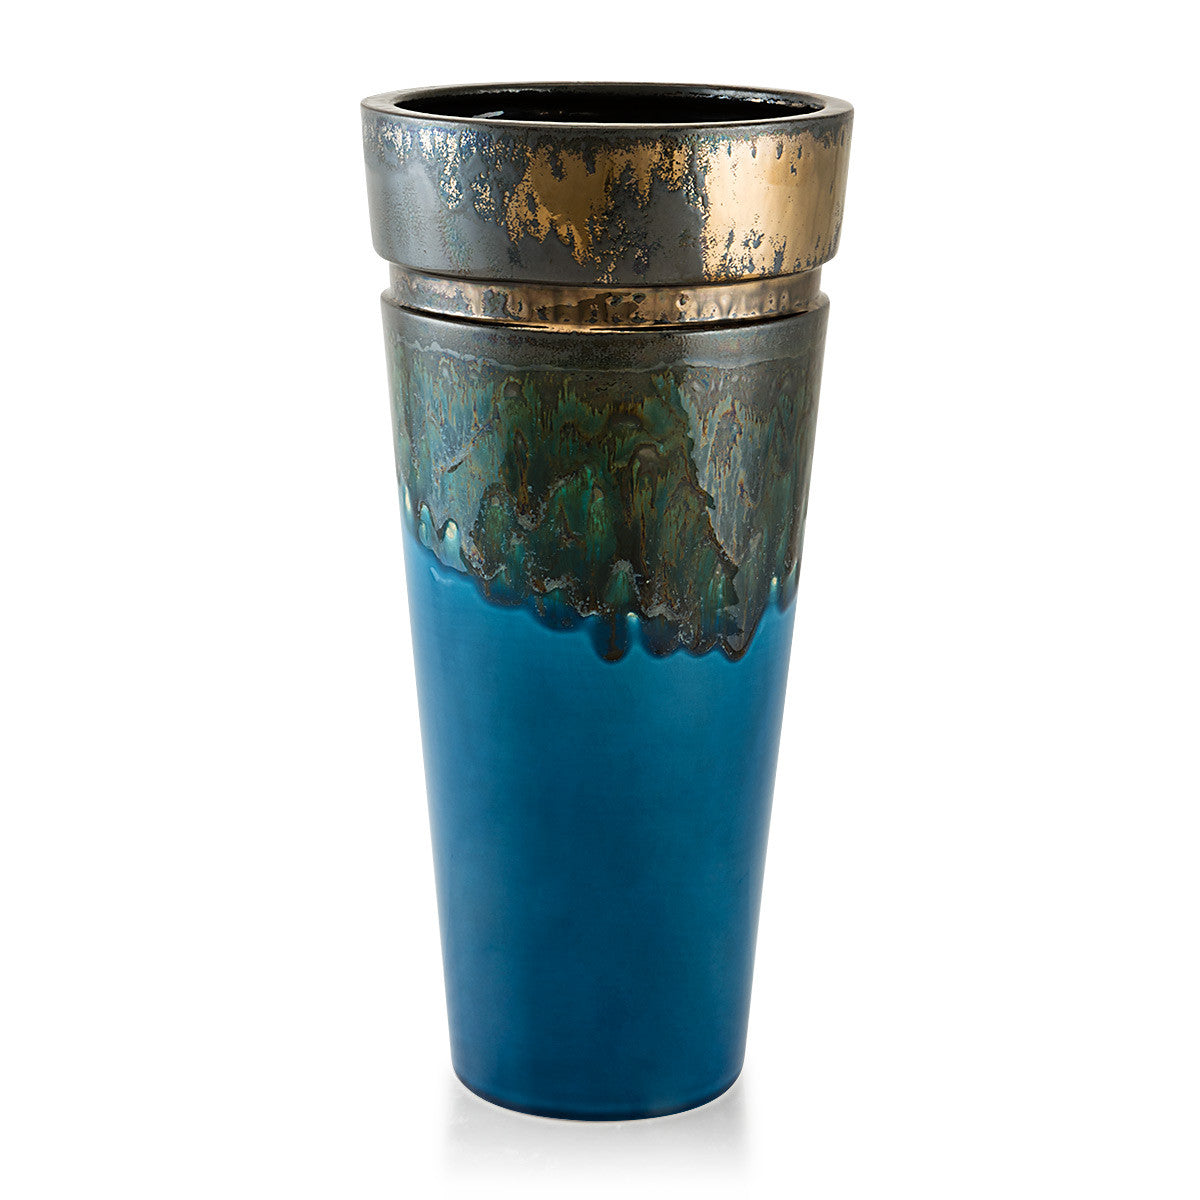 Ceramic blue vase | Reactive glaze